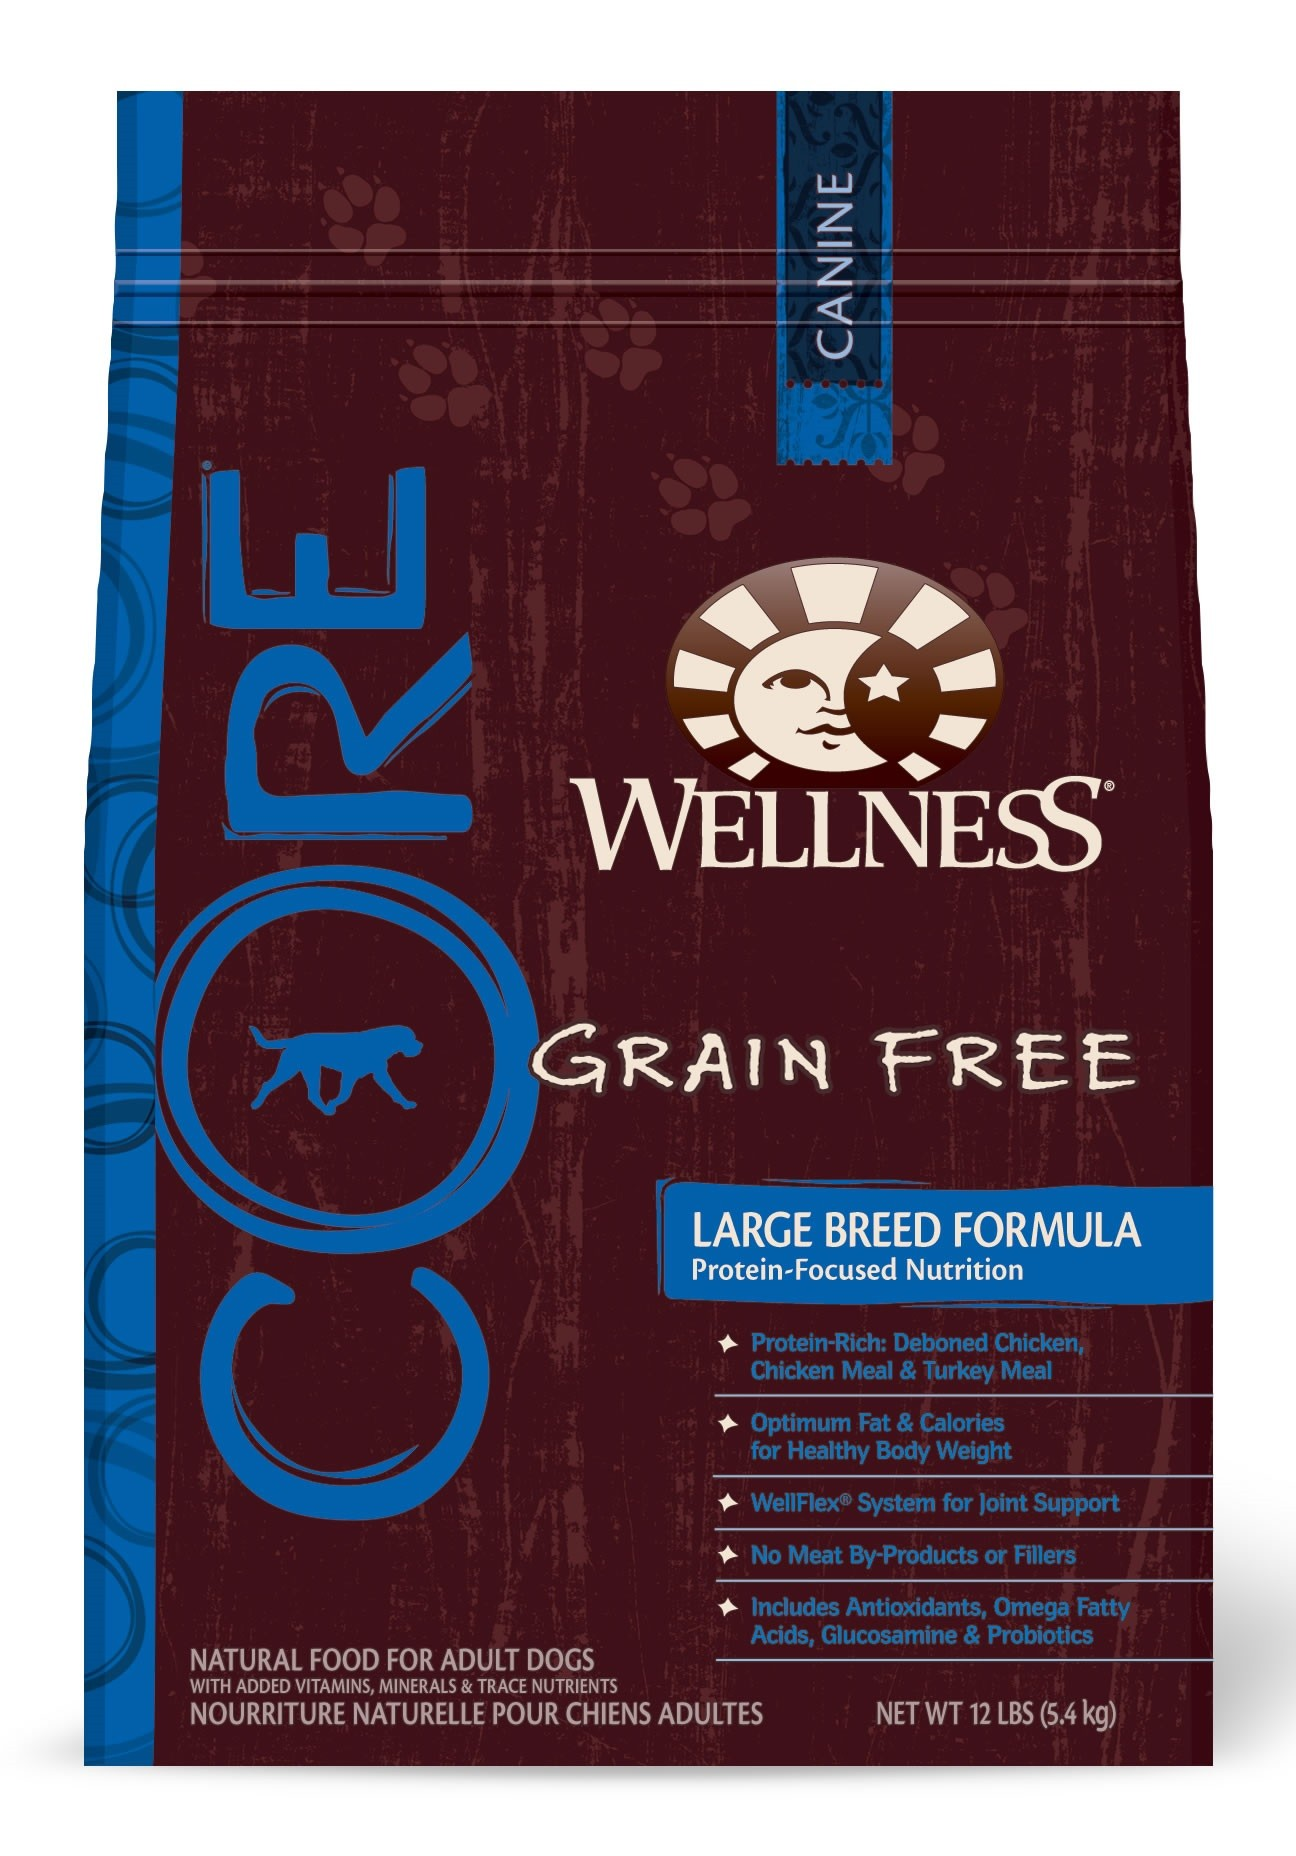 CORE Grain-Free Large Breed Formula